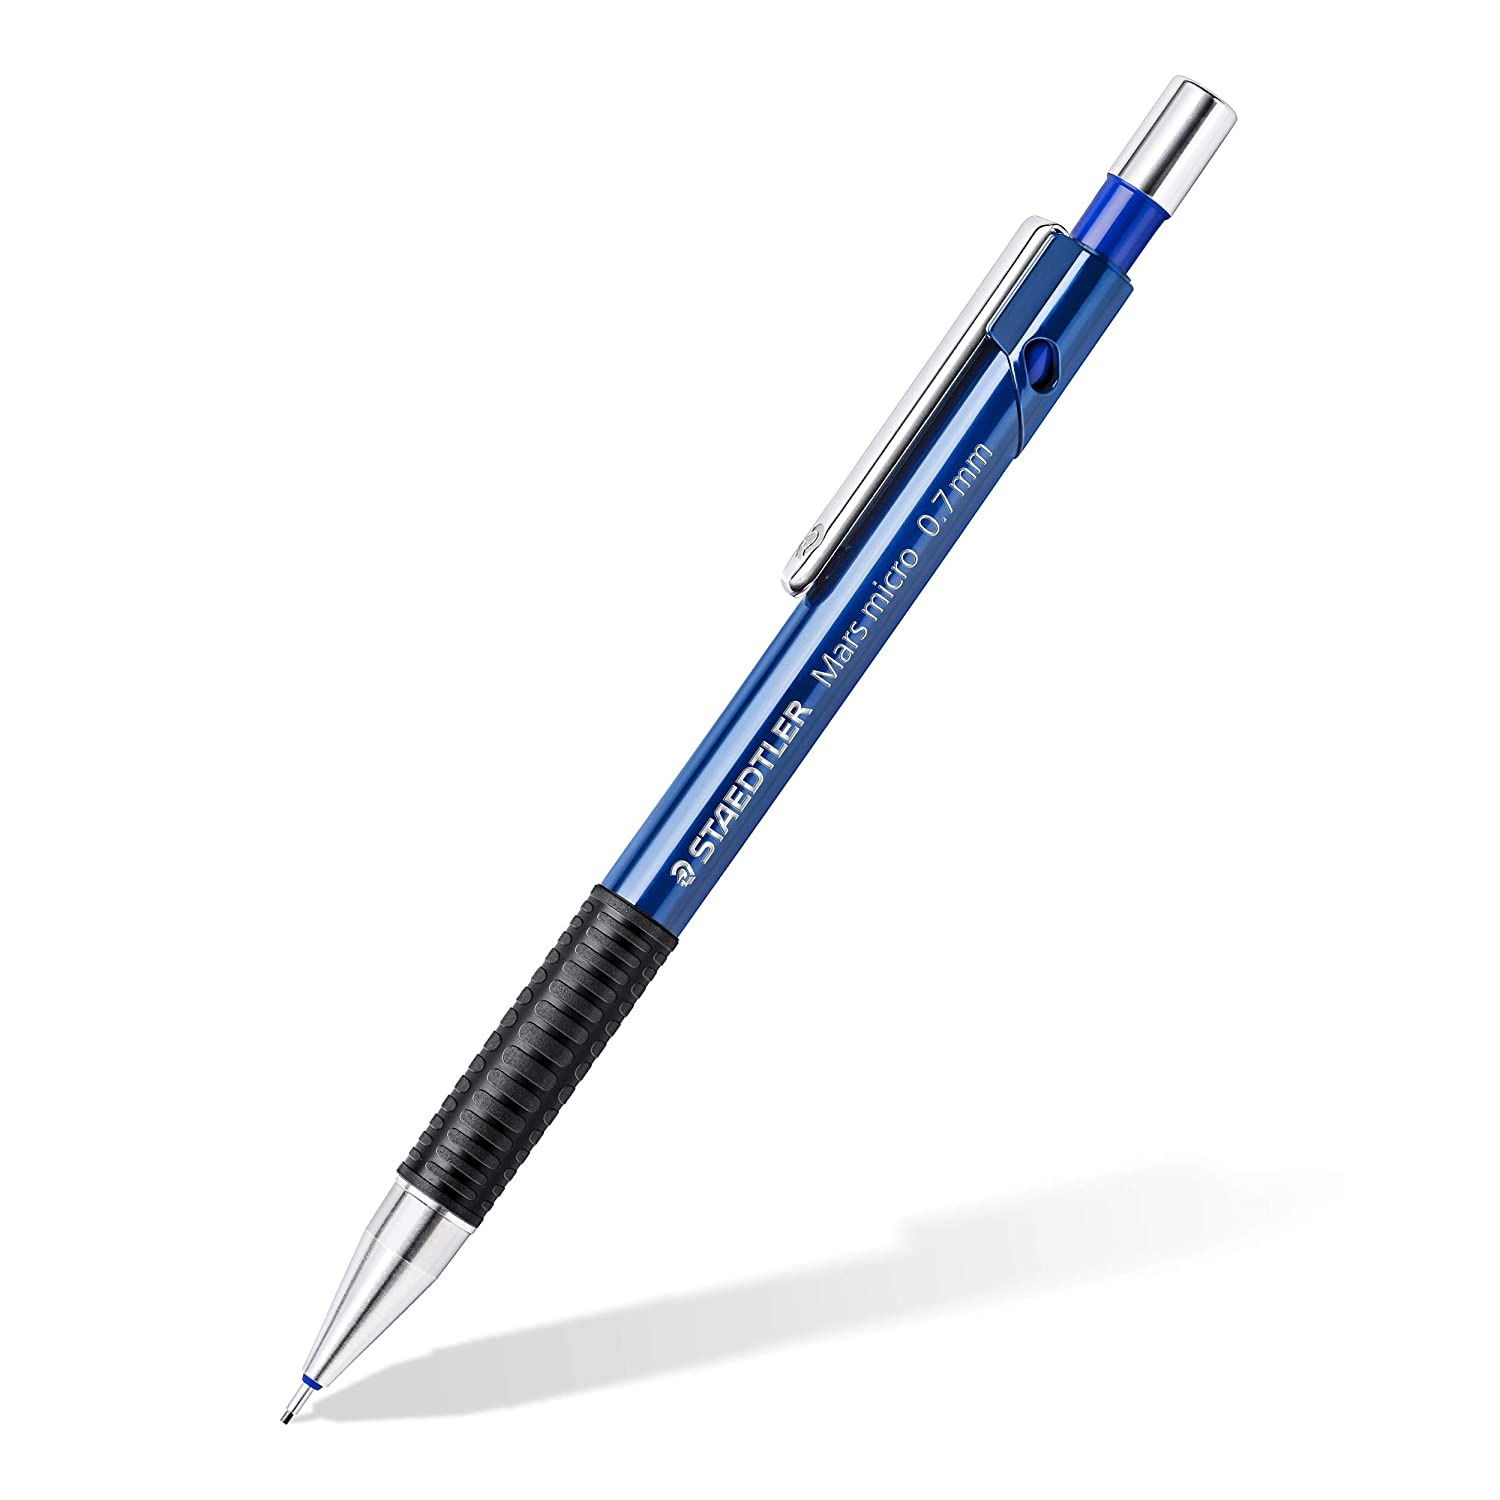 Staedtler Mars Micro 775 0.7mm Mechanical Pencil